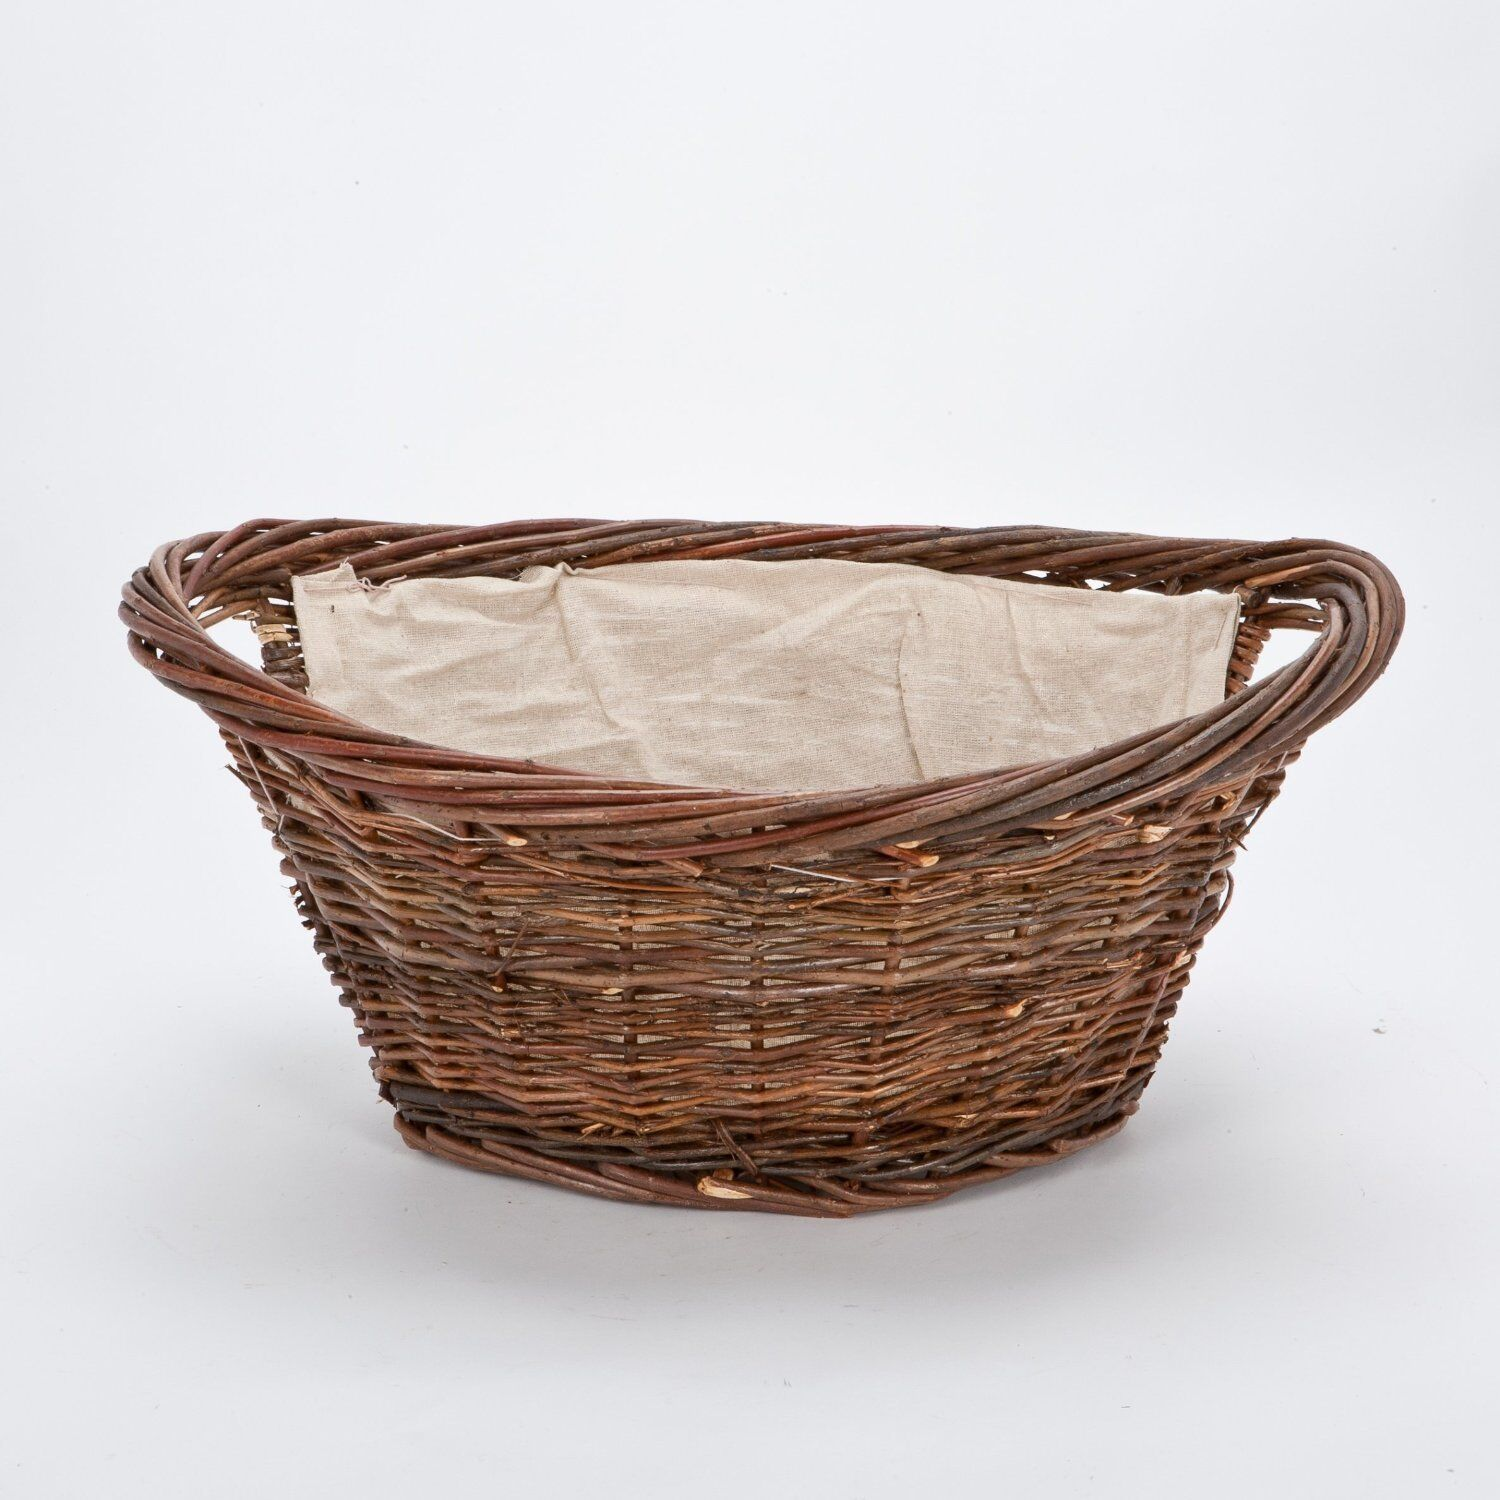 Baskets baskets large wicker bread on christmas baskets for kitchen - Kitchen Wicker Basket Fire Wood Log Holder Carrier Laundry Clothes